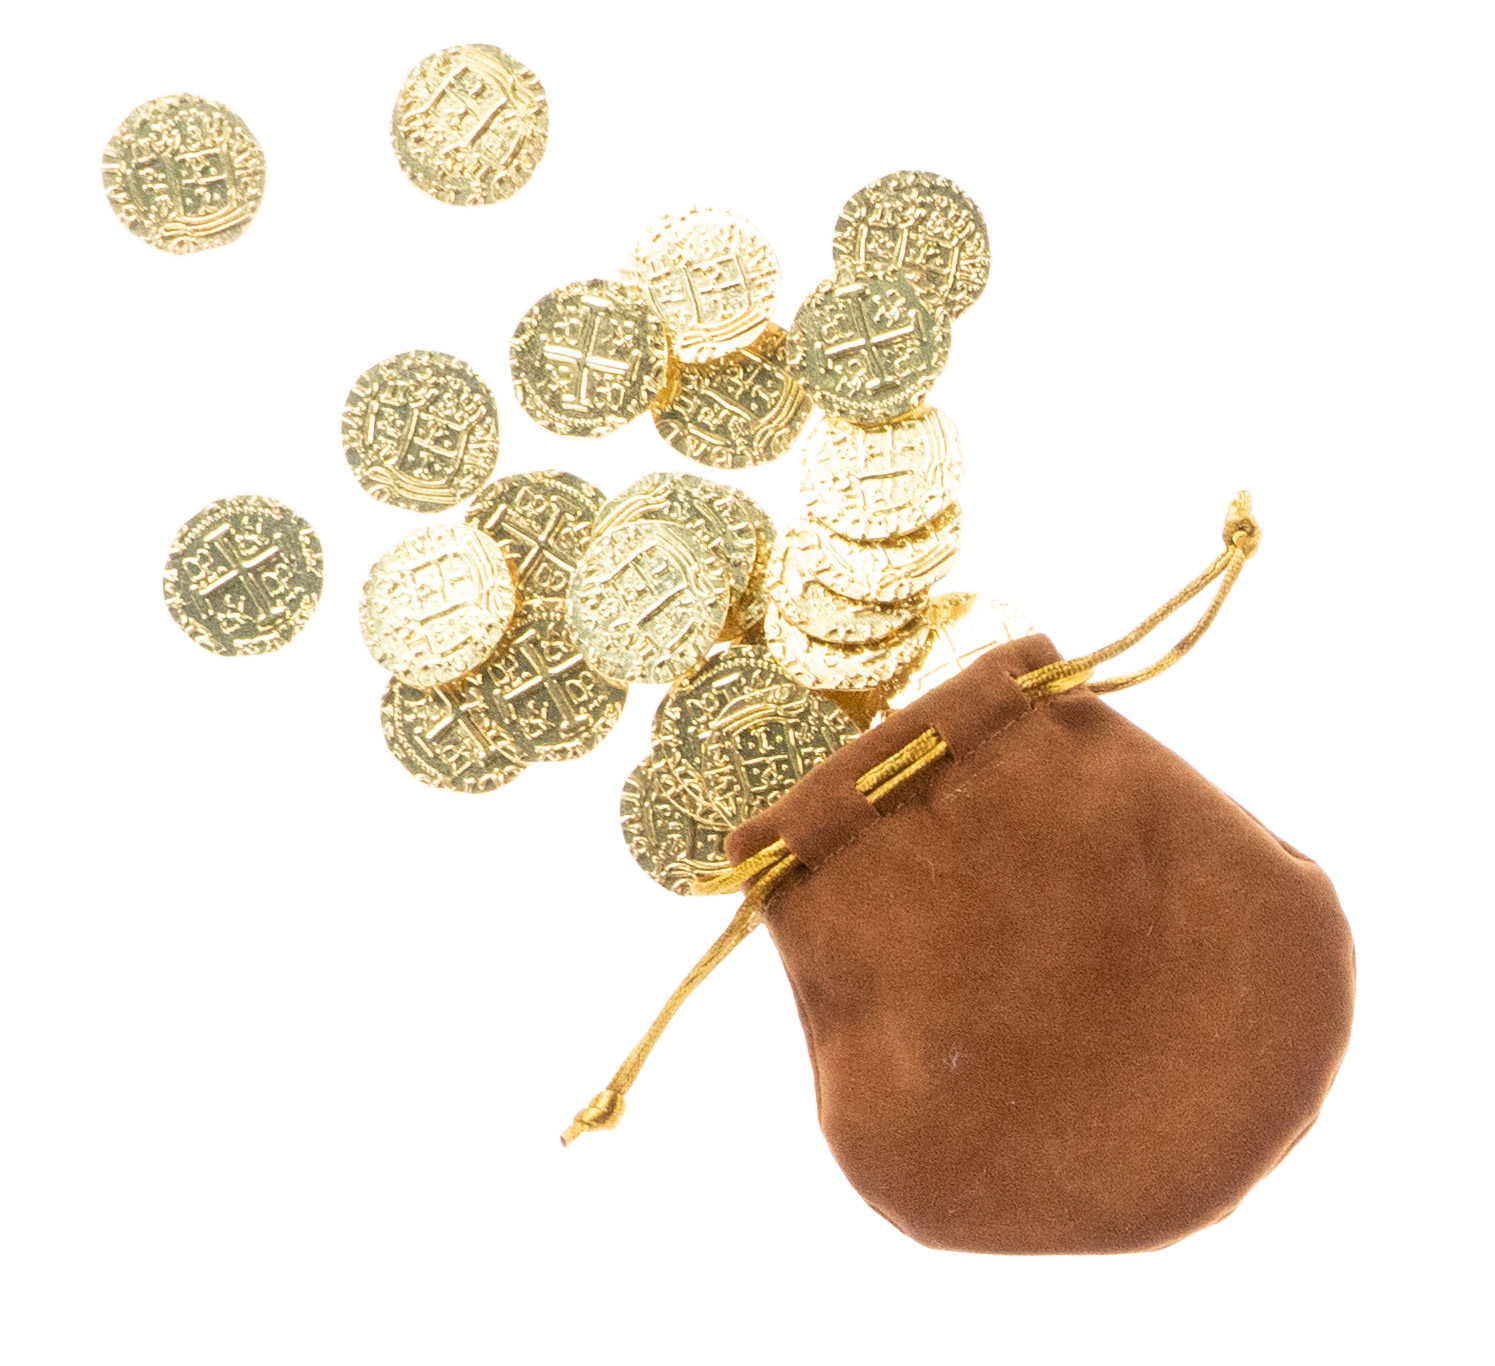 A pouch of gold coins